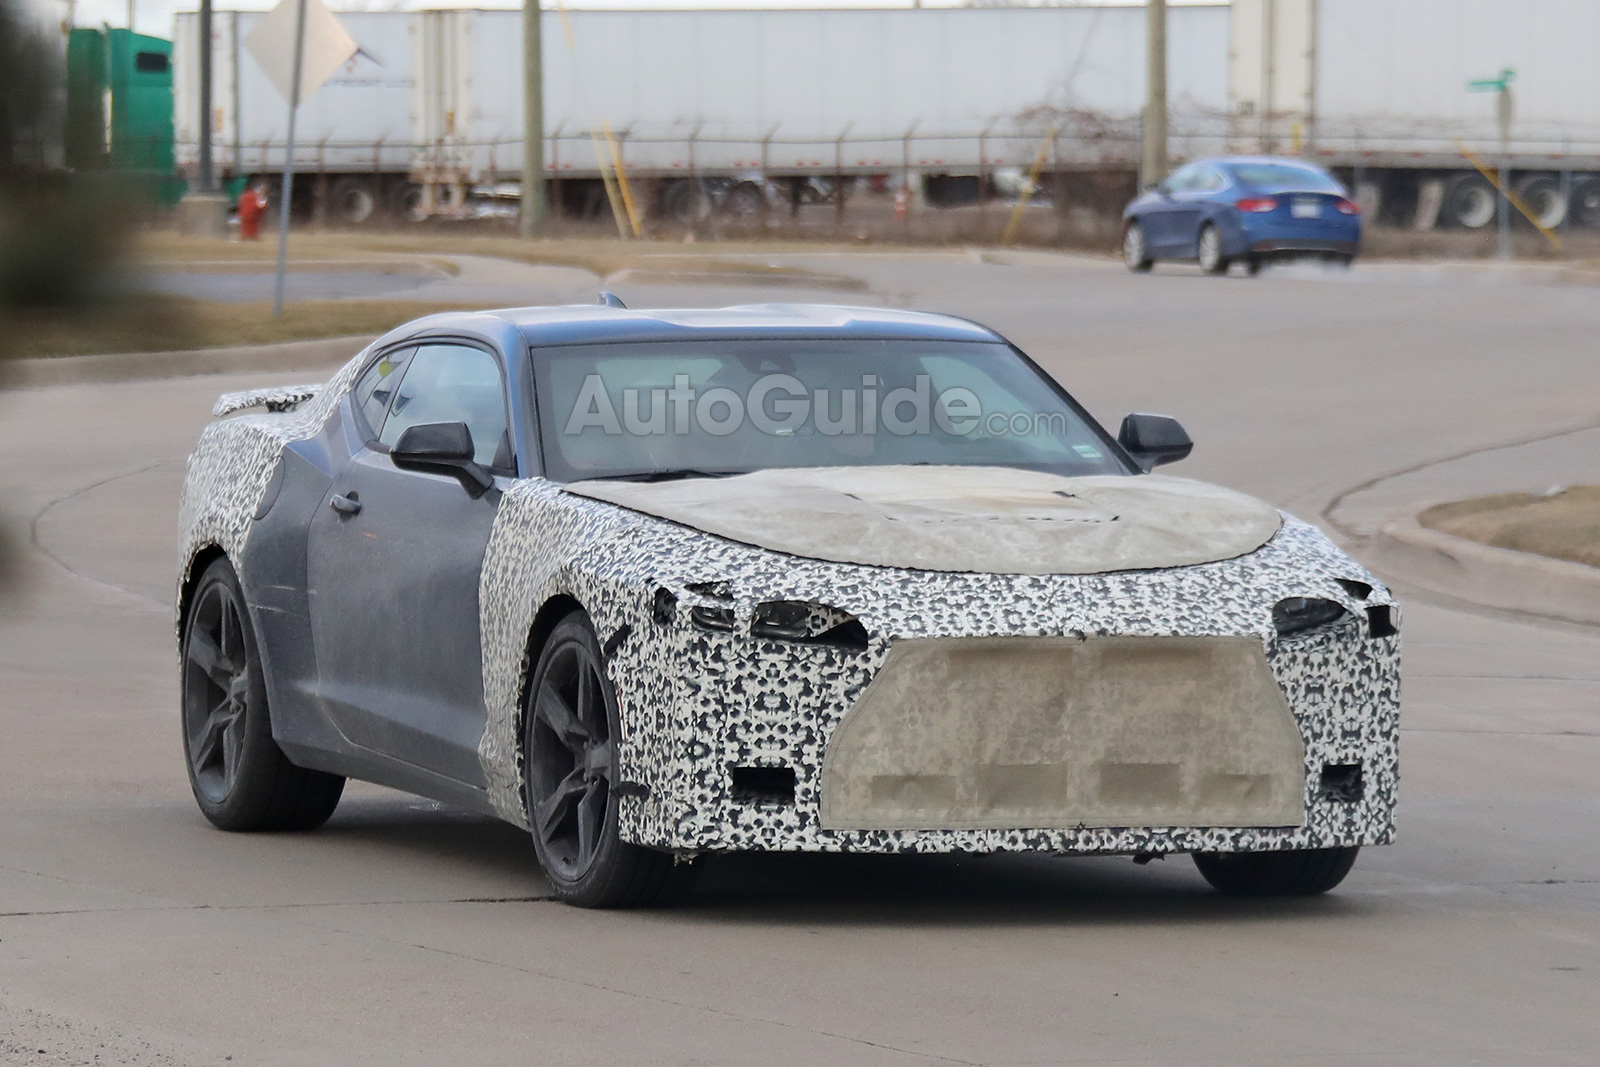 2019 Chevrolet Camaro Spied Testing Facelift and 6-Speed Manual ...